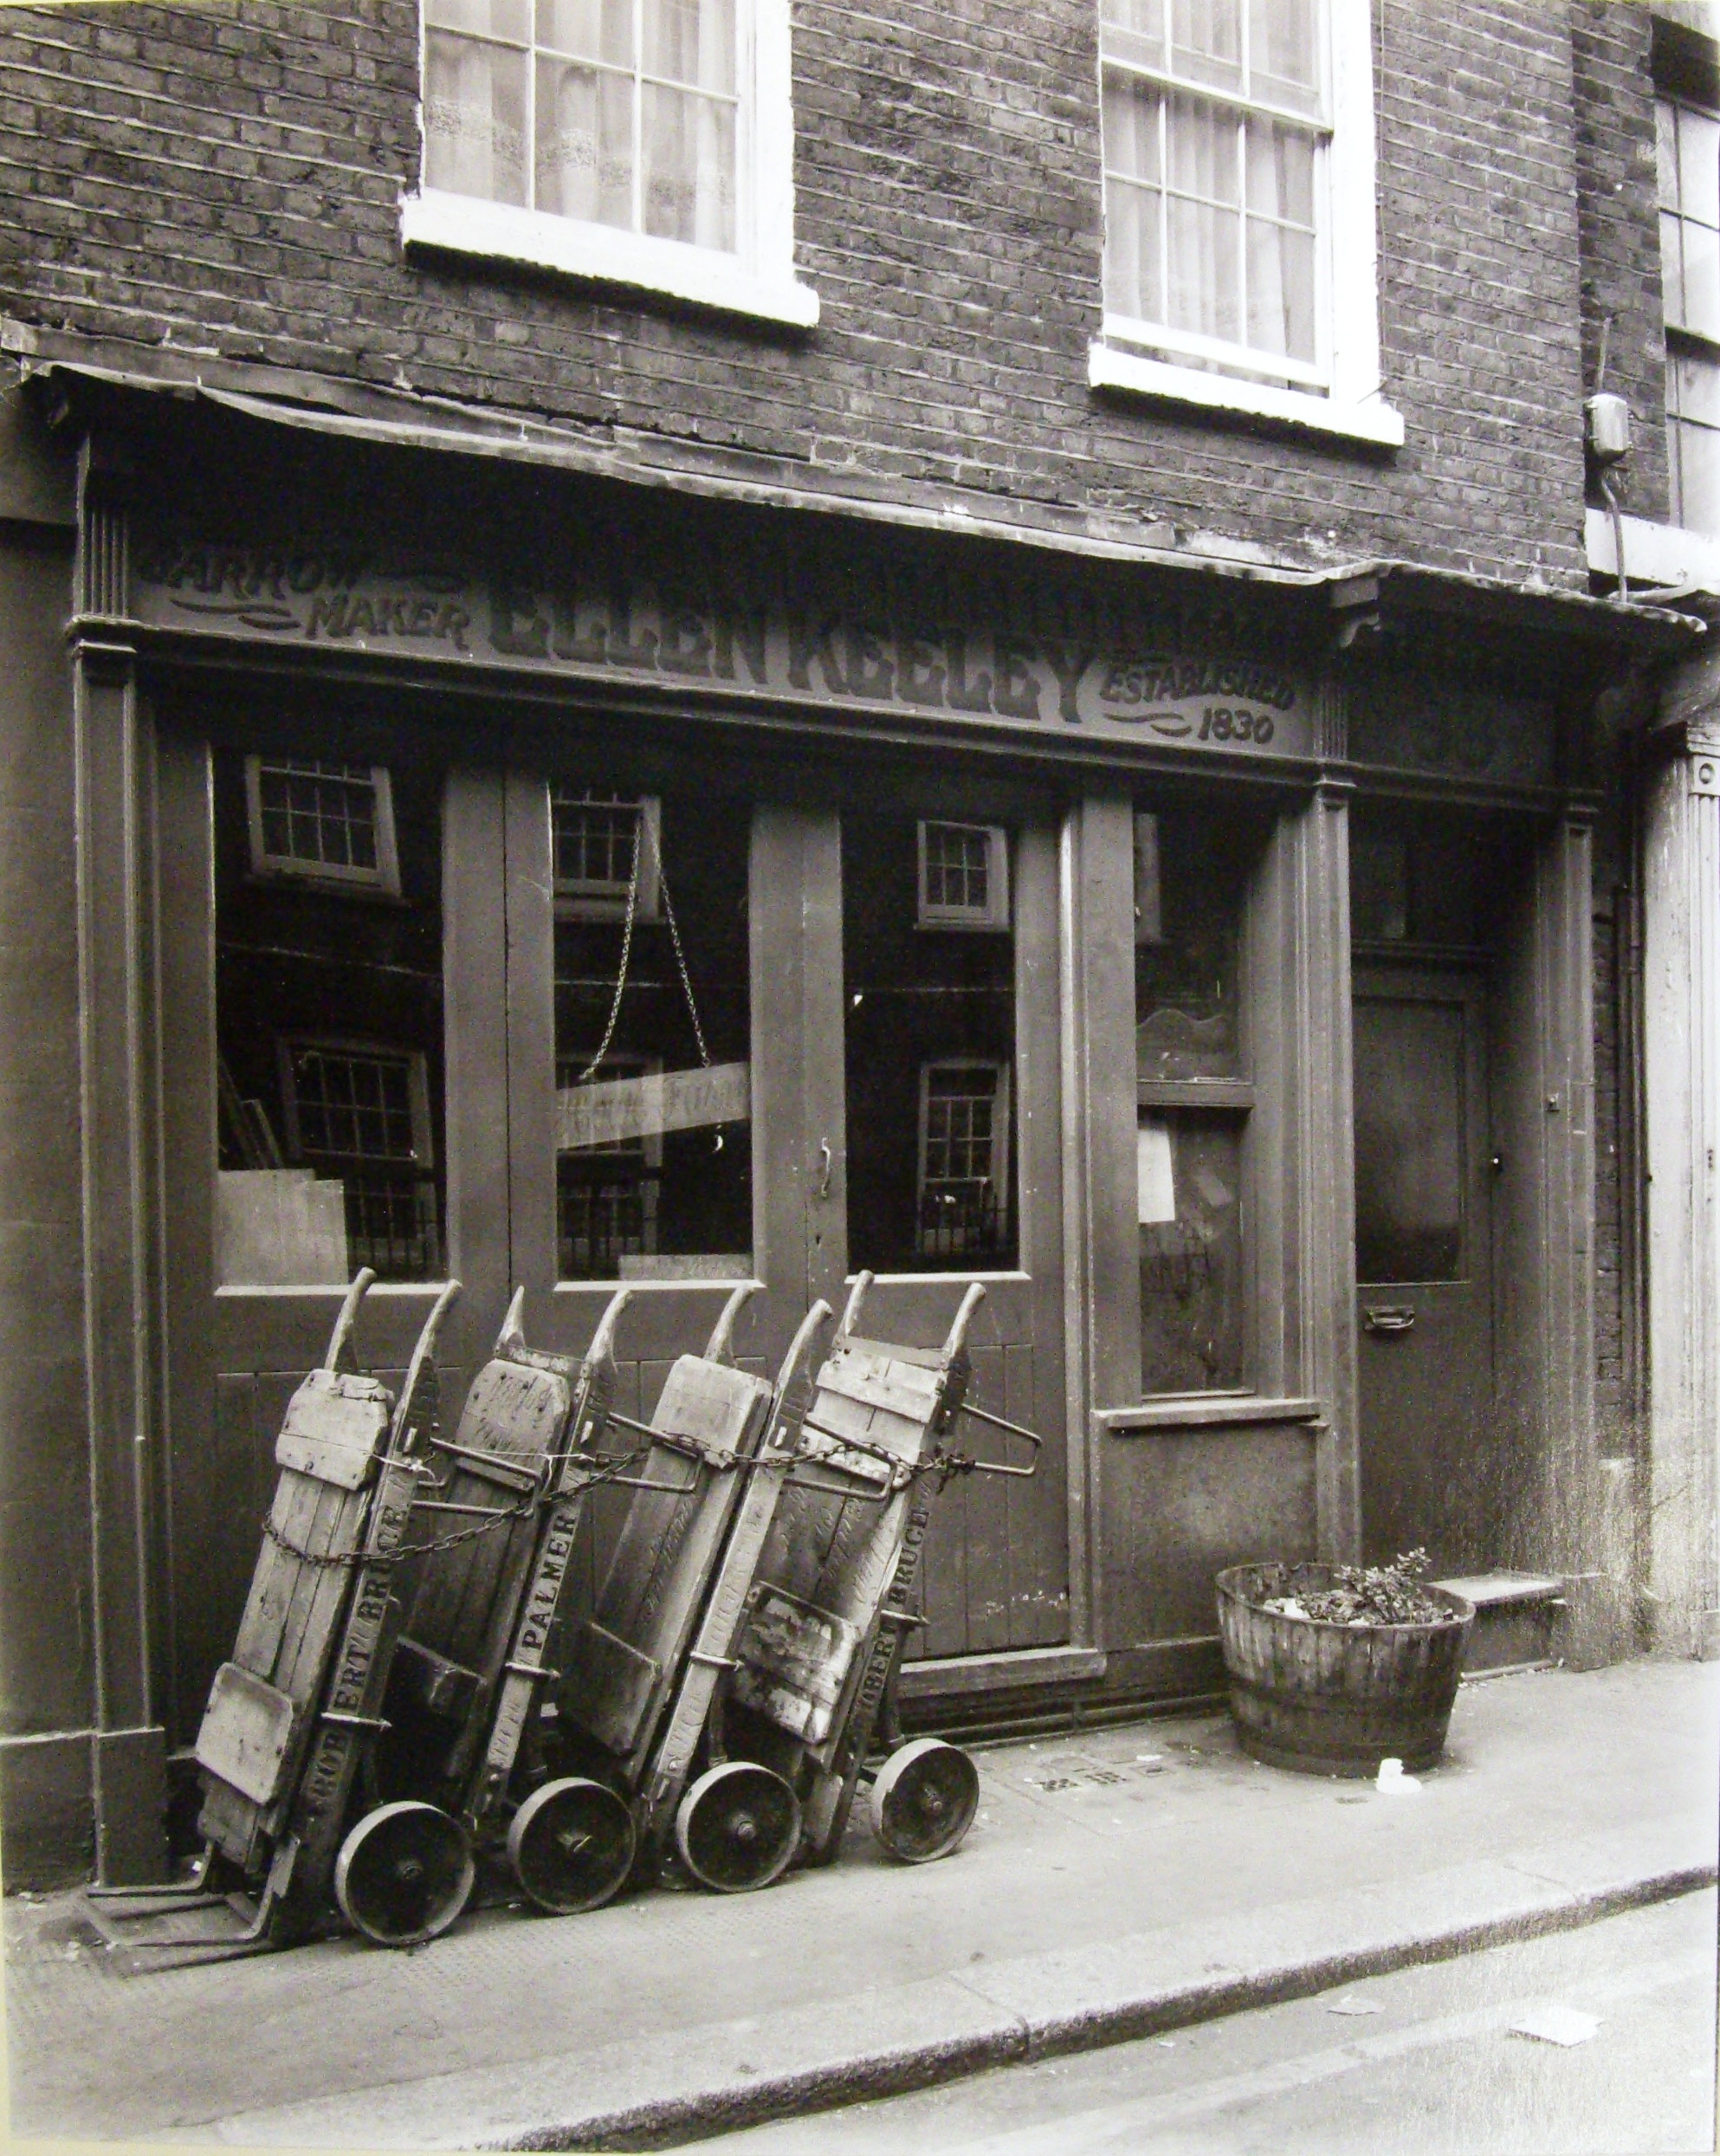 1980 Ellen Keeley's the famous barrowmakers, in Neal Street.